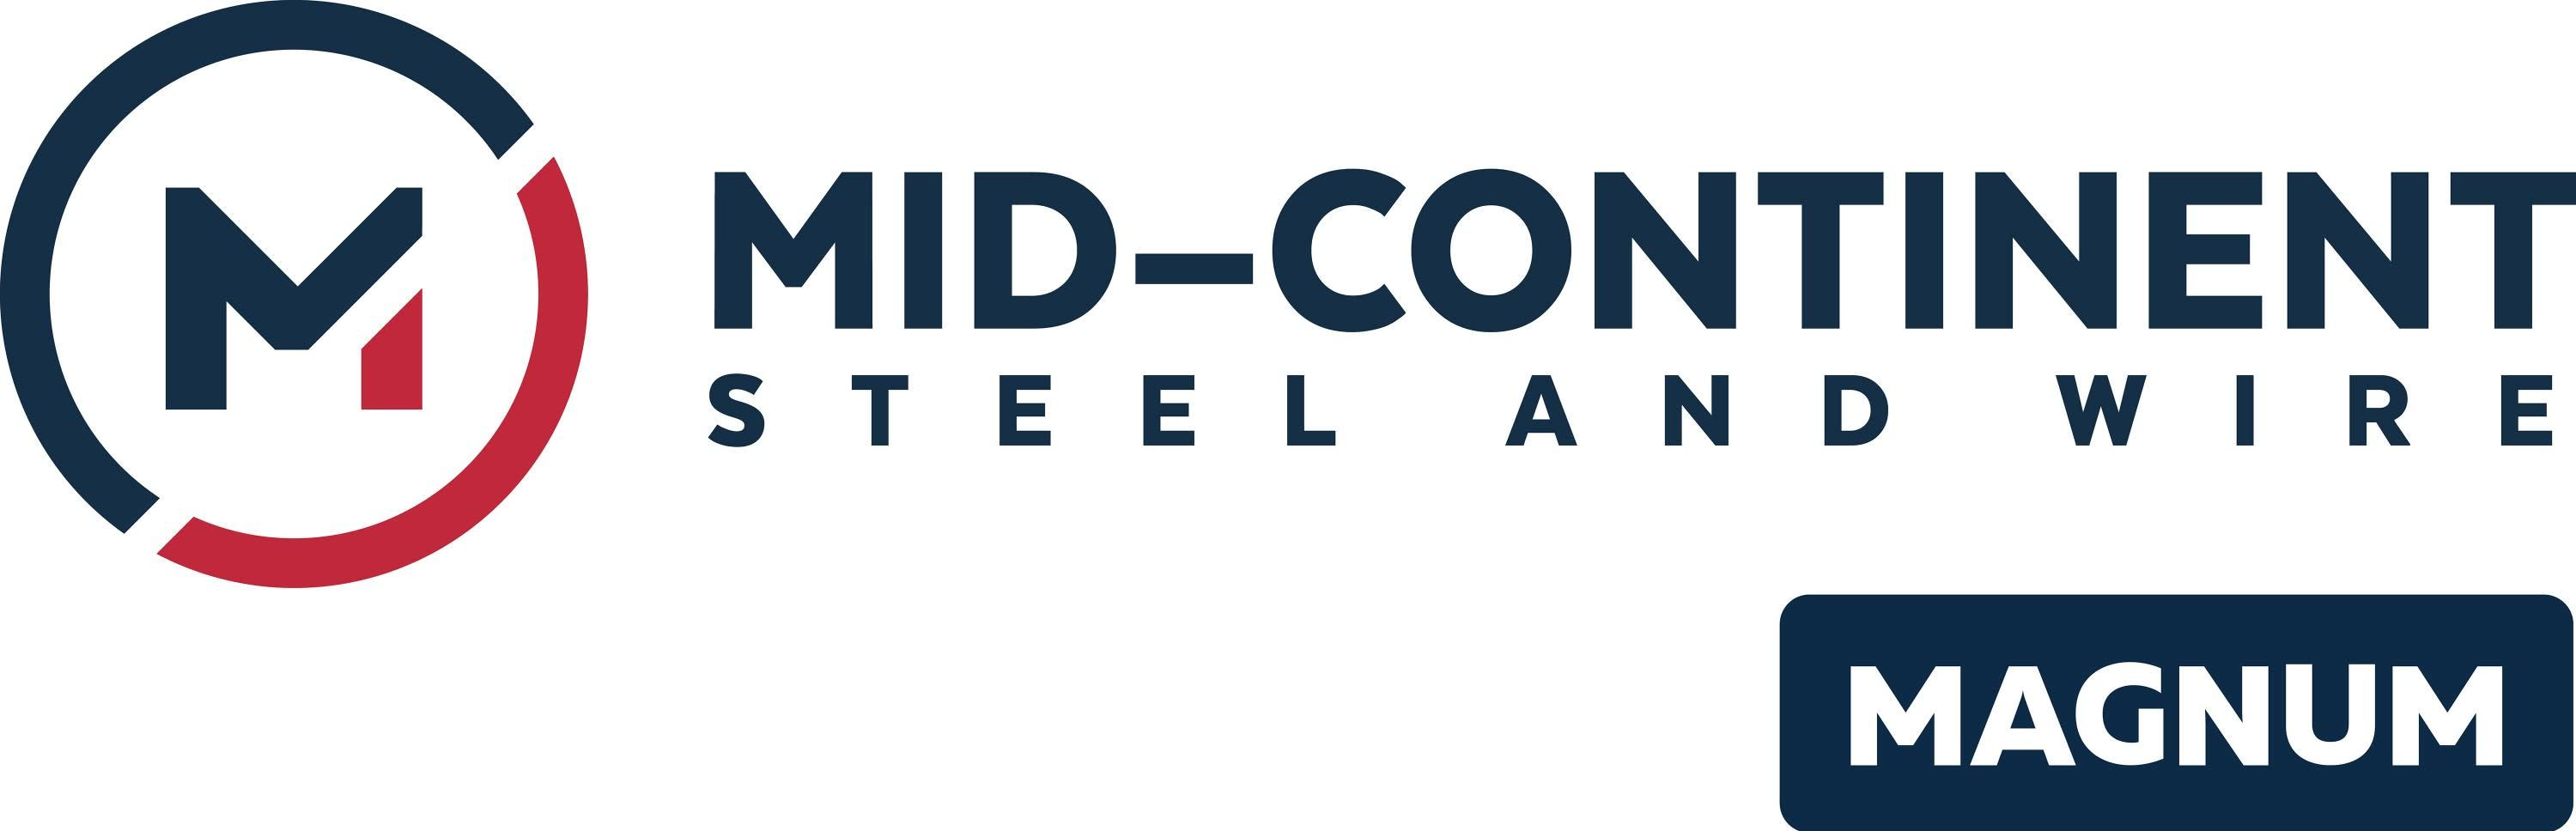 Mid-Continent Steel and Wire